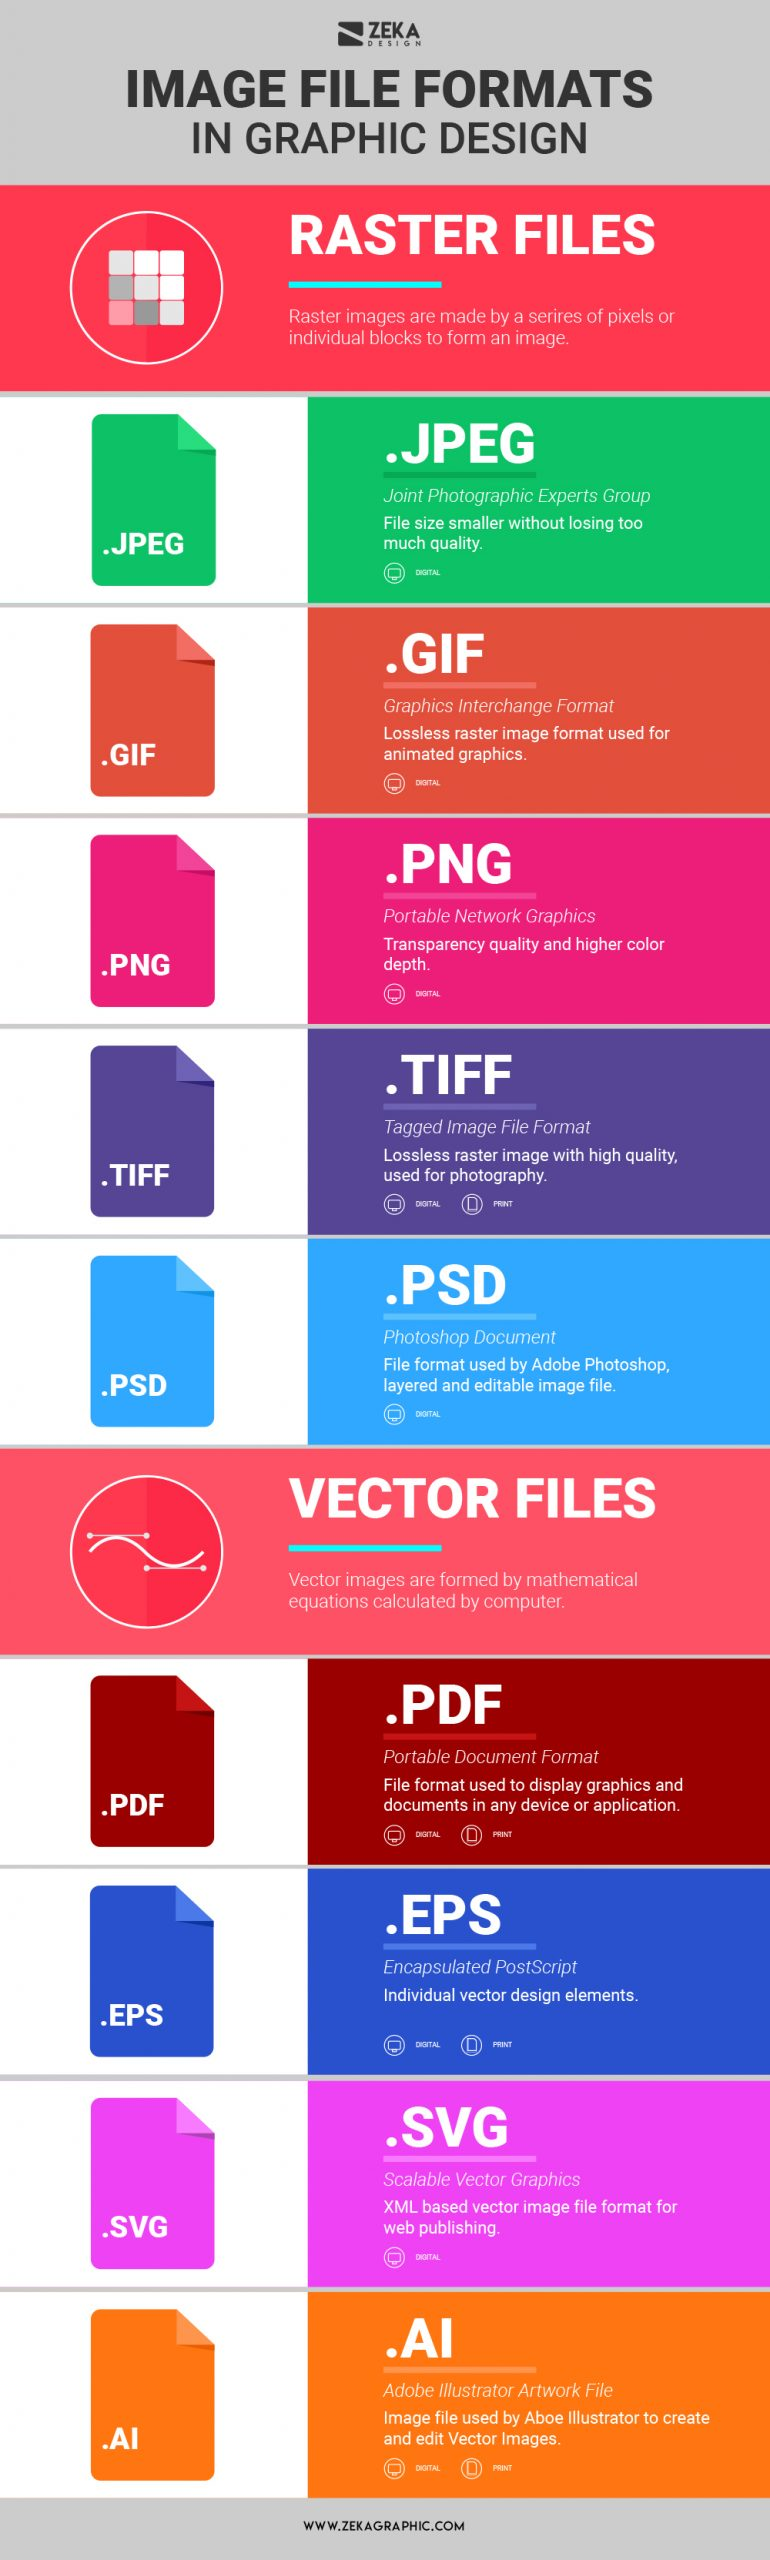 Image File Formats In Graphic Design Explained Infographic